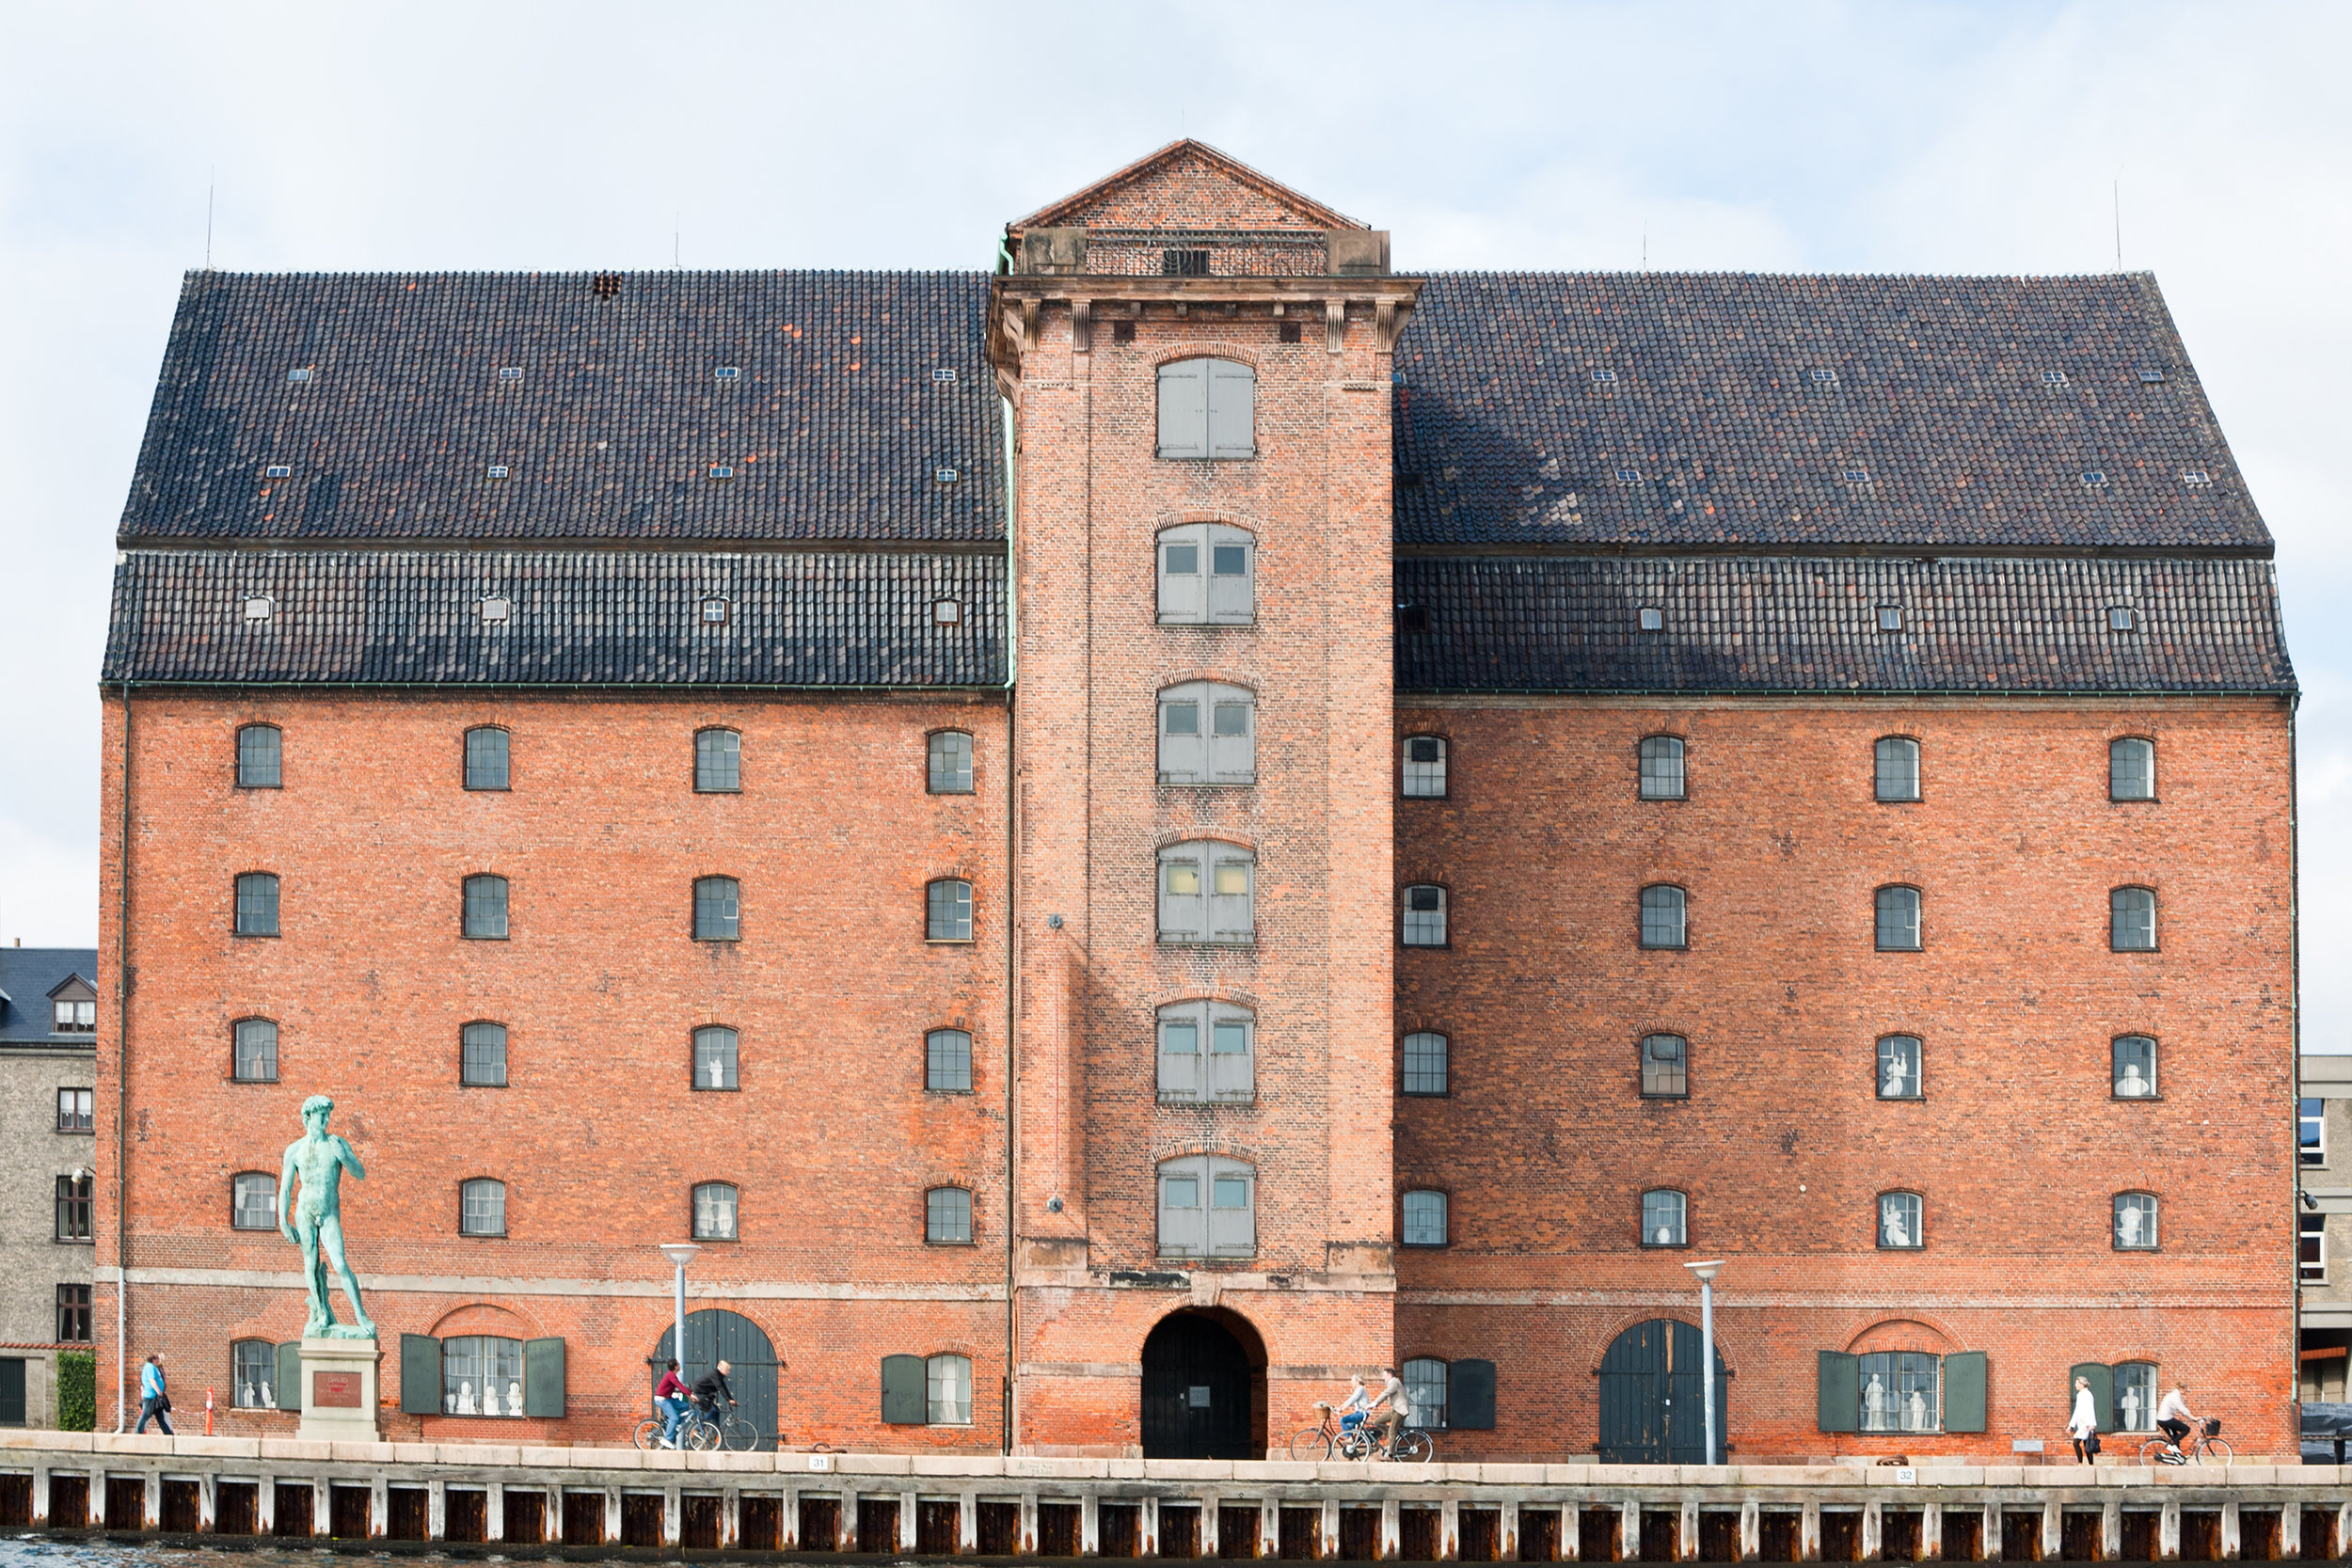 West India warehouse in Copenhagen, currently houses the Royal Cast Collection (Photo credit: Colourbox)